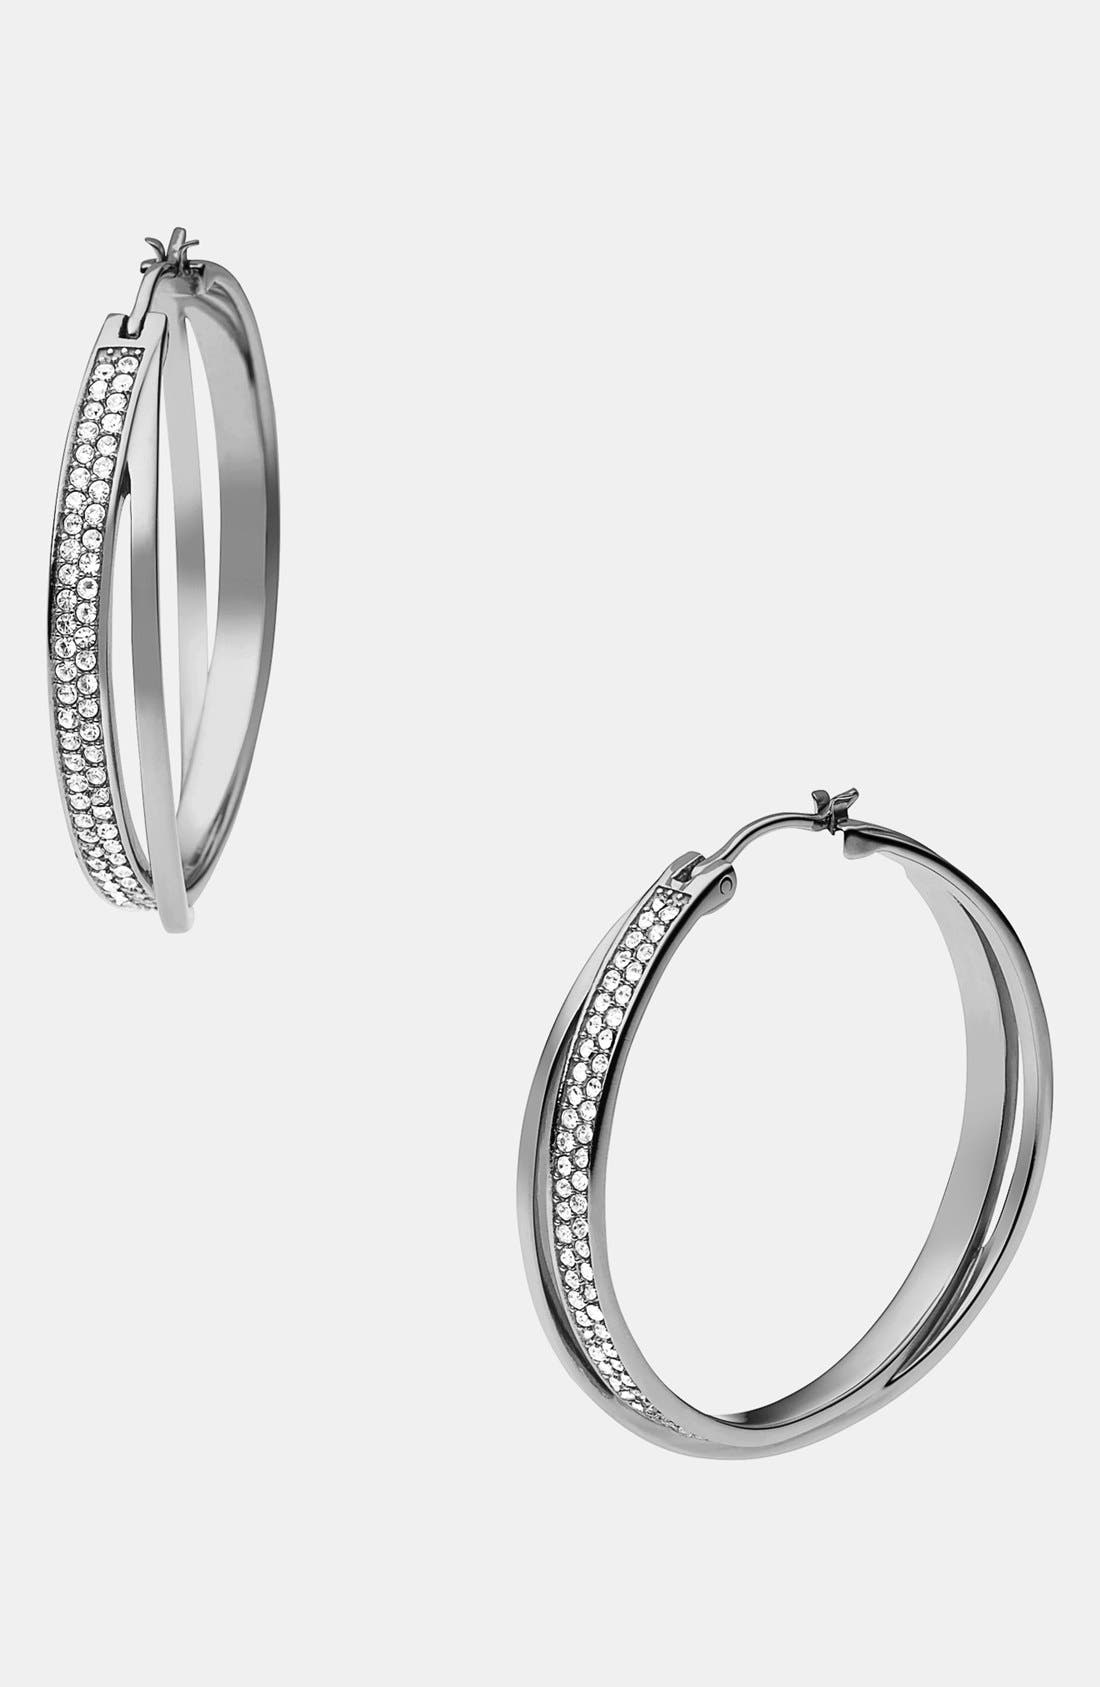 Main Image - Michael Kors 'Brilliance' Hoop Earrings